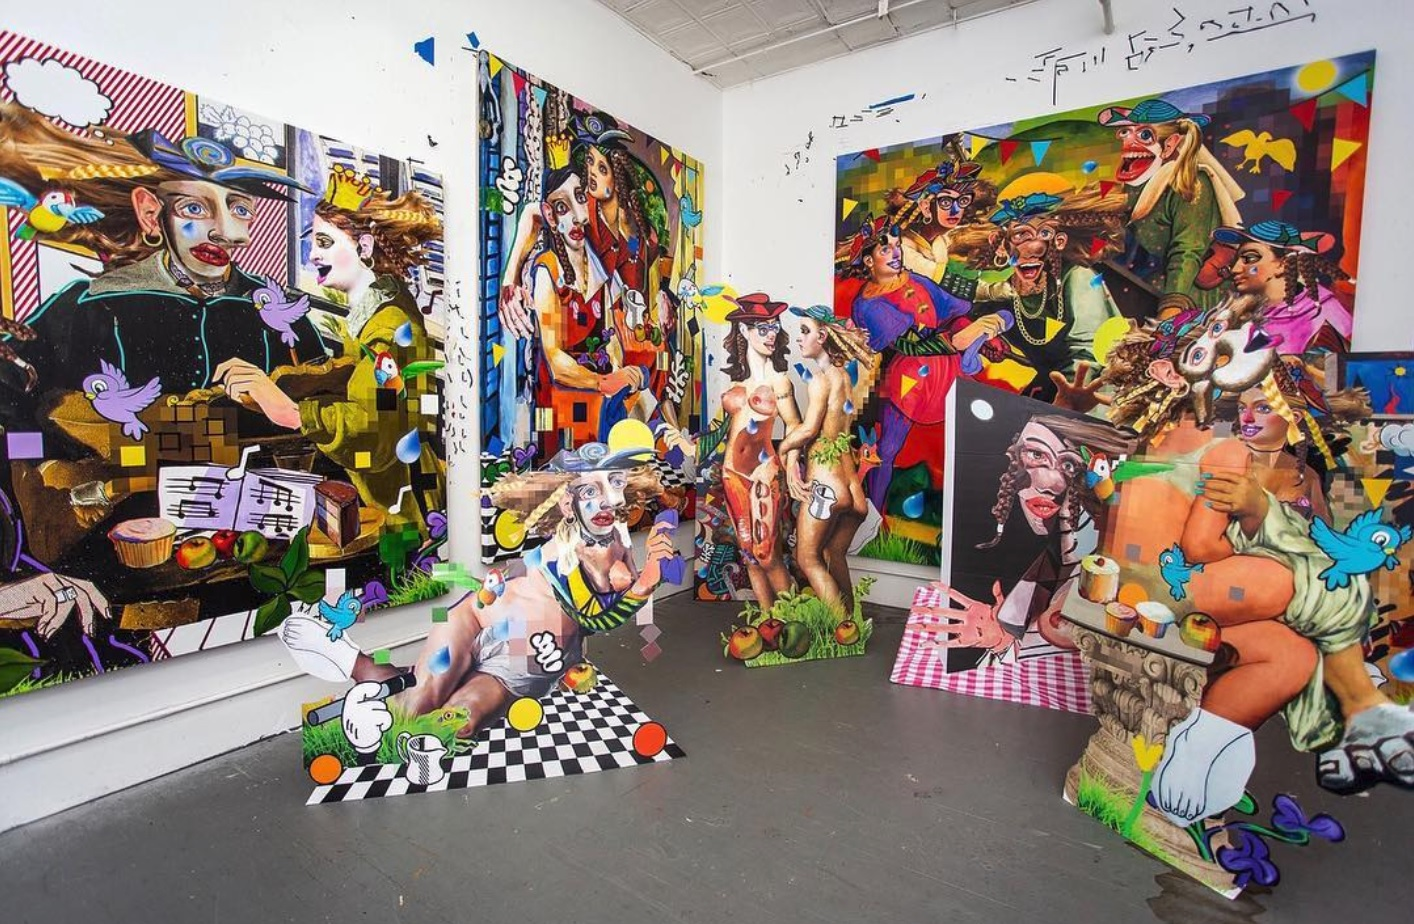 Allison Zuckerman's Brooklyn studio. I can't think of a more perfect example of the impossibly chaotic feeling of classical visual culture being utterly consumed by post-modern, digital icons. Death by a million stickers.